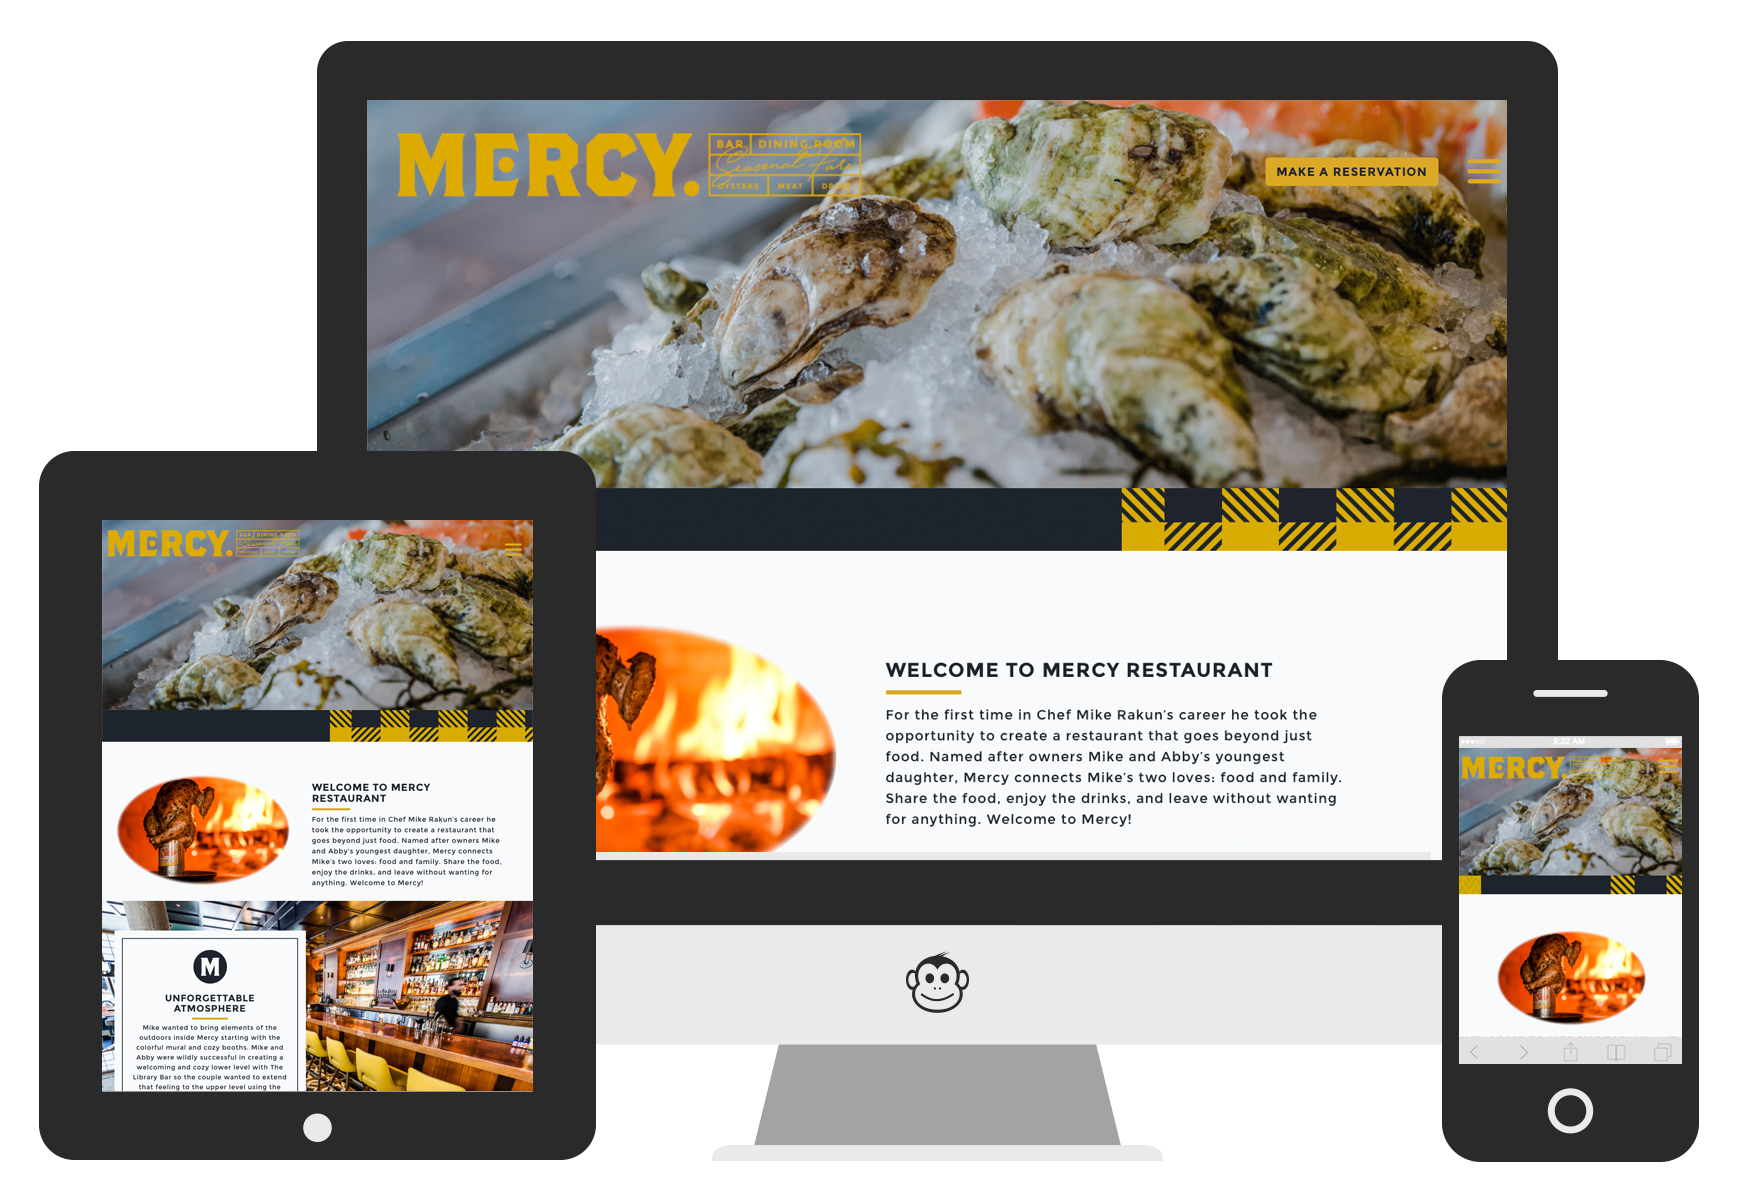 https://s3.amazonaws.com/logicwebmedia/wp-content/uploads/20171129184500/mercy-mobile-template-view.png